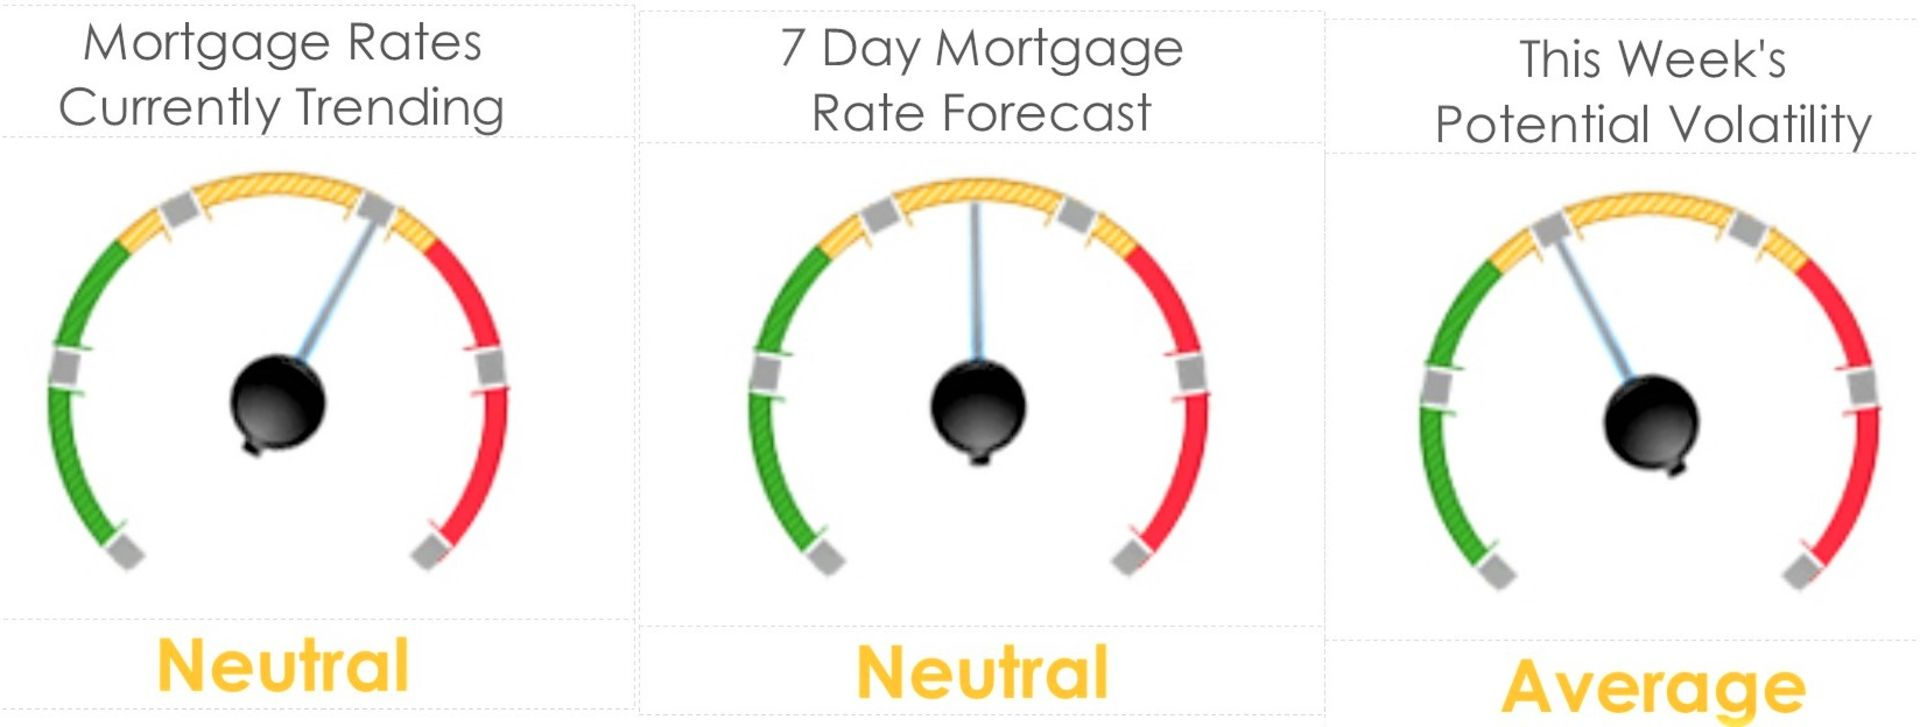 Mortgage Rate Analysis, Have Trade Tariffs Impacted Rates?